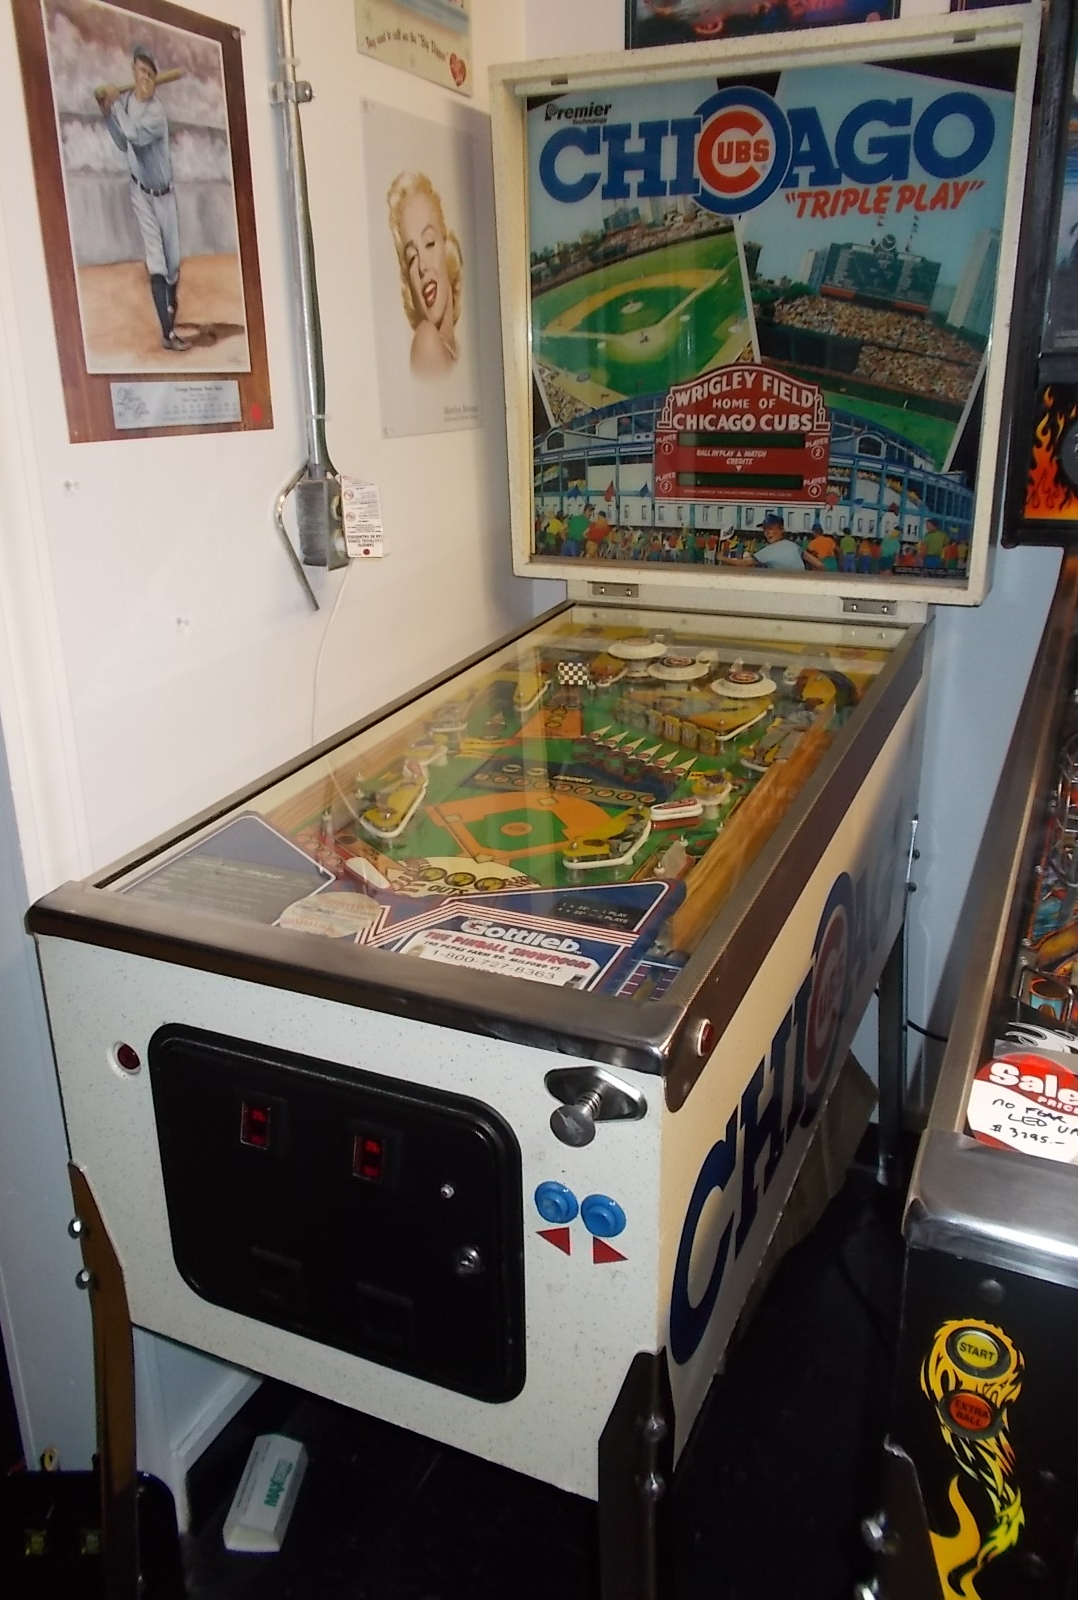 chicago cubs  u0026quot triple play u0026quot  pinball machine game by premier